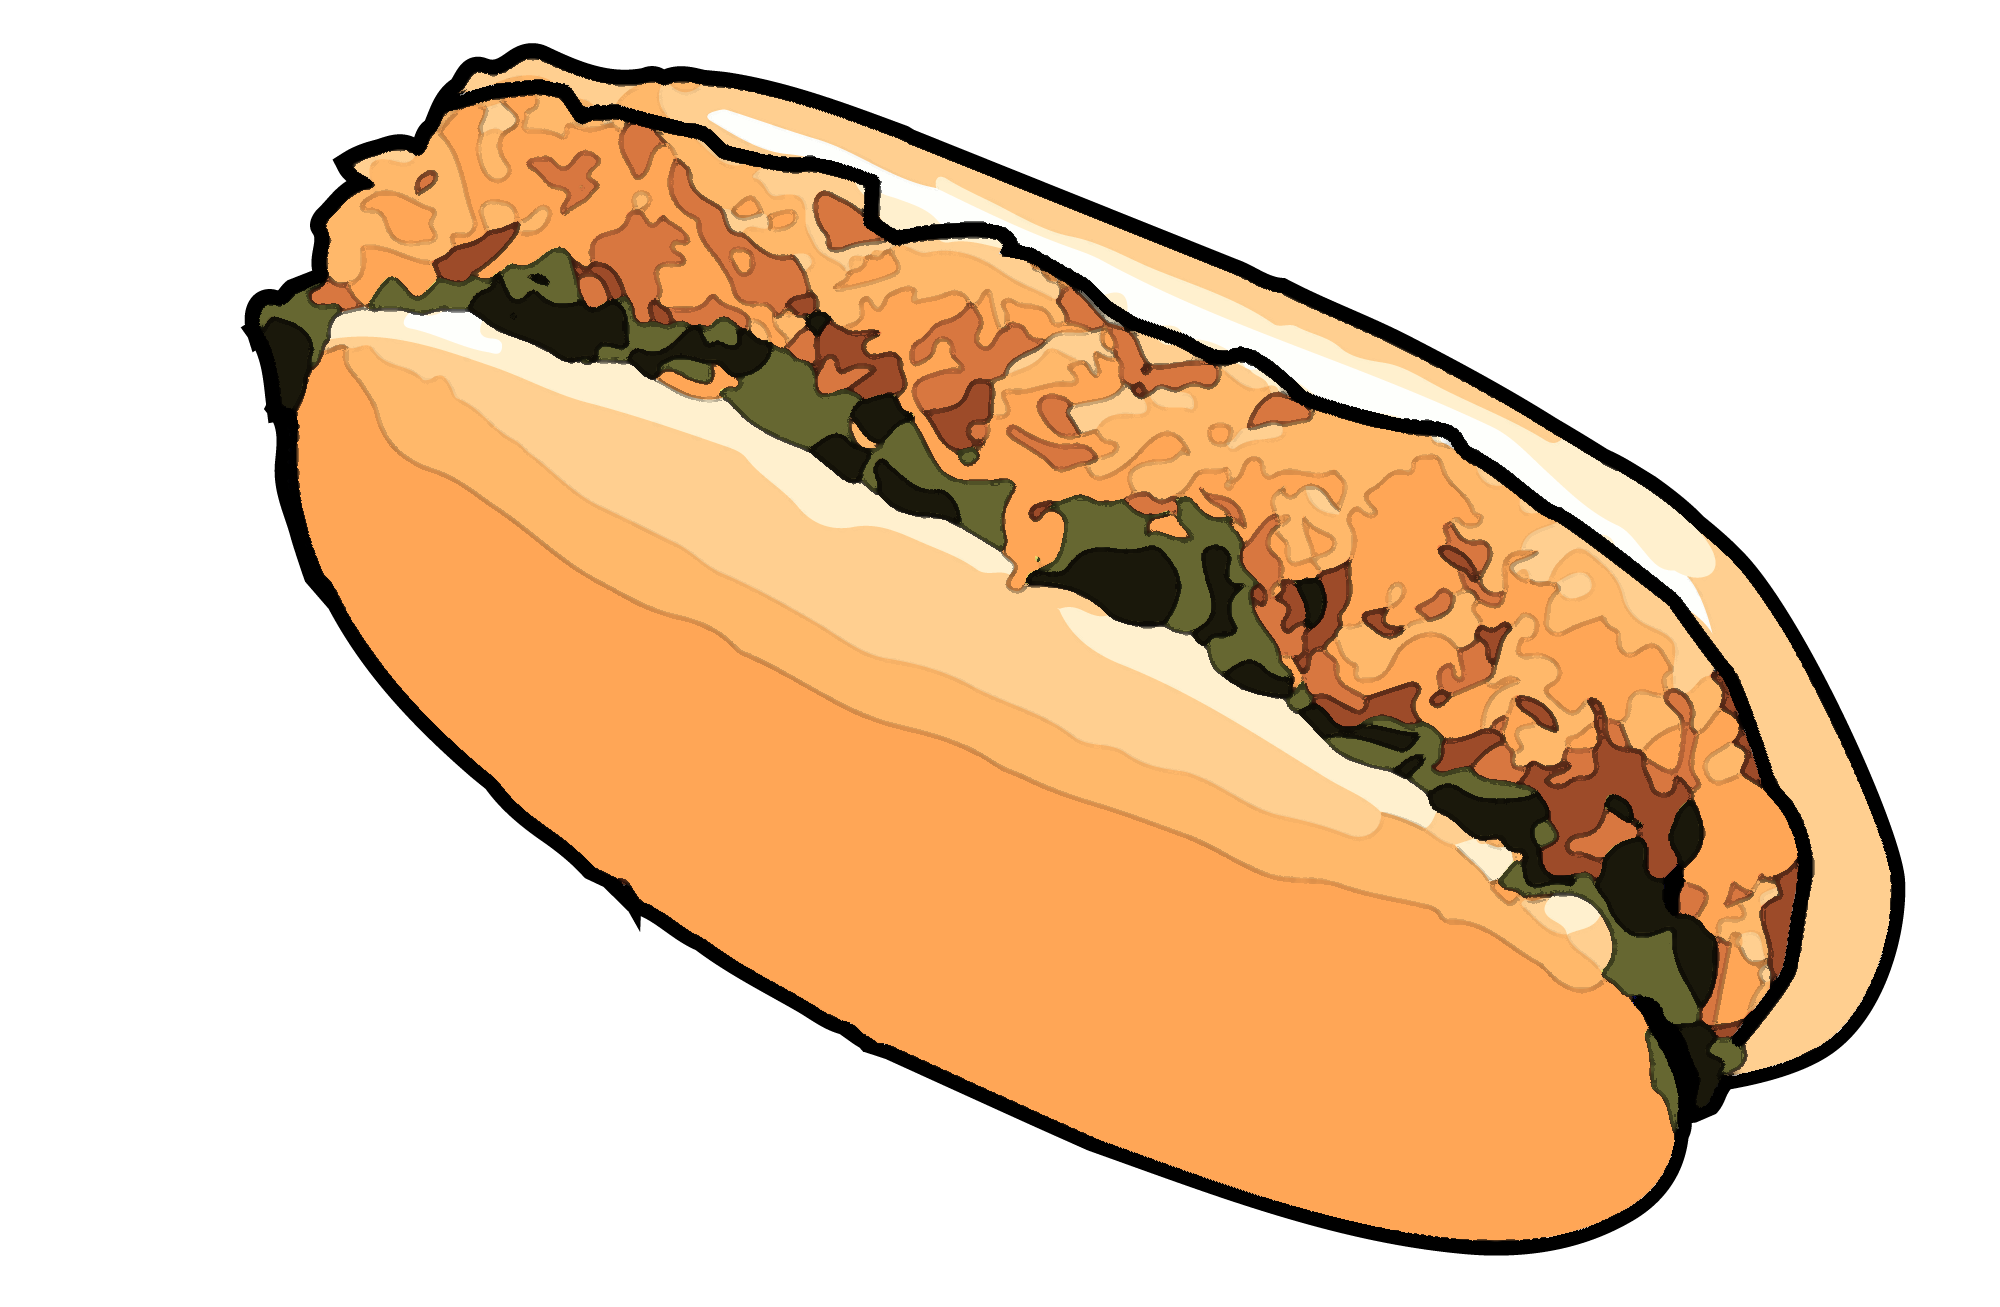 Chili cheese dog clipart image library library Discontinued Fast Food Items in the PH Employees Wish to Return image library library